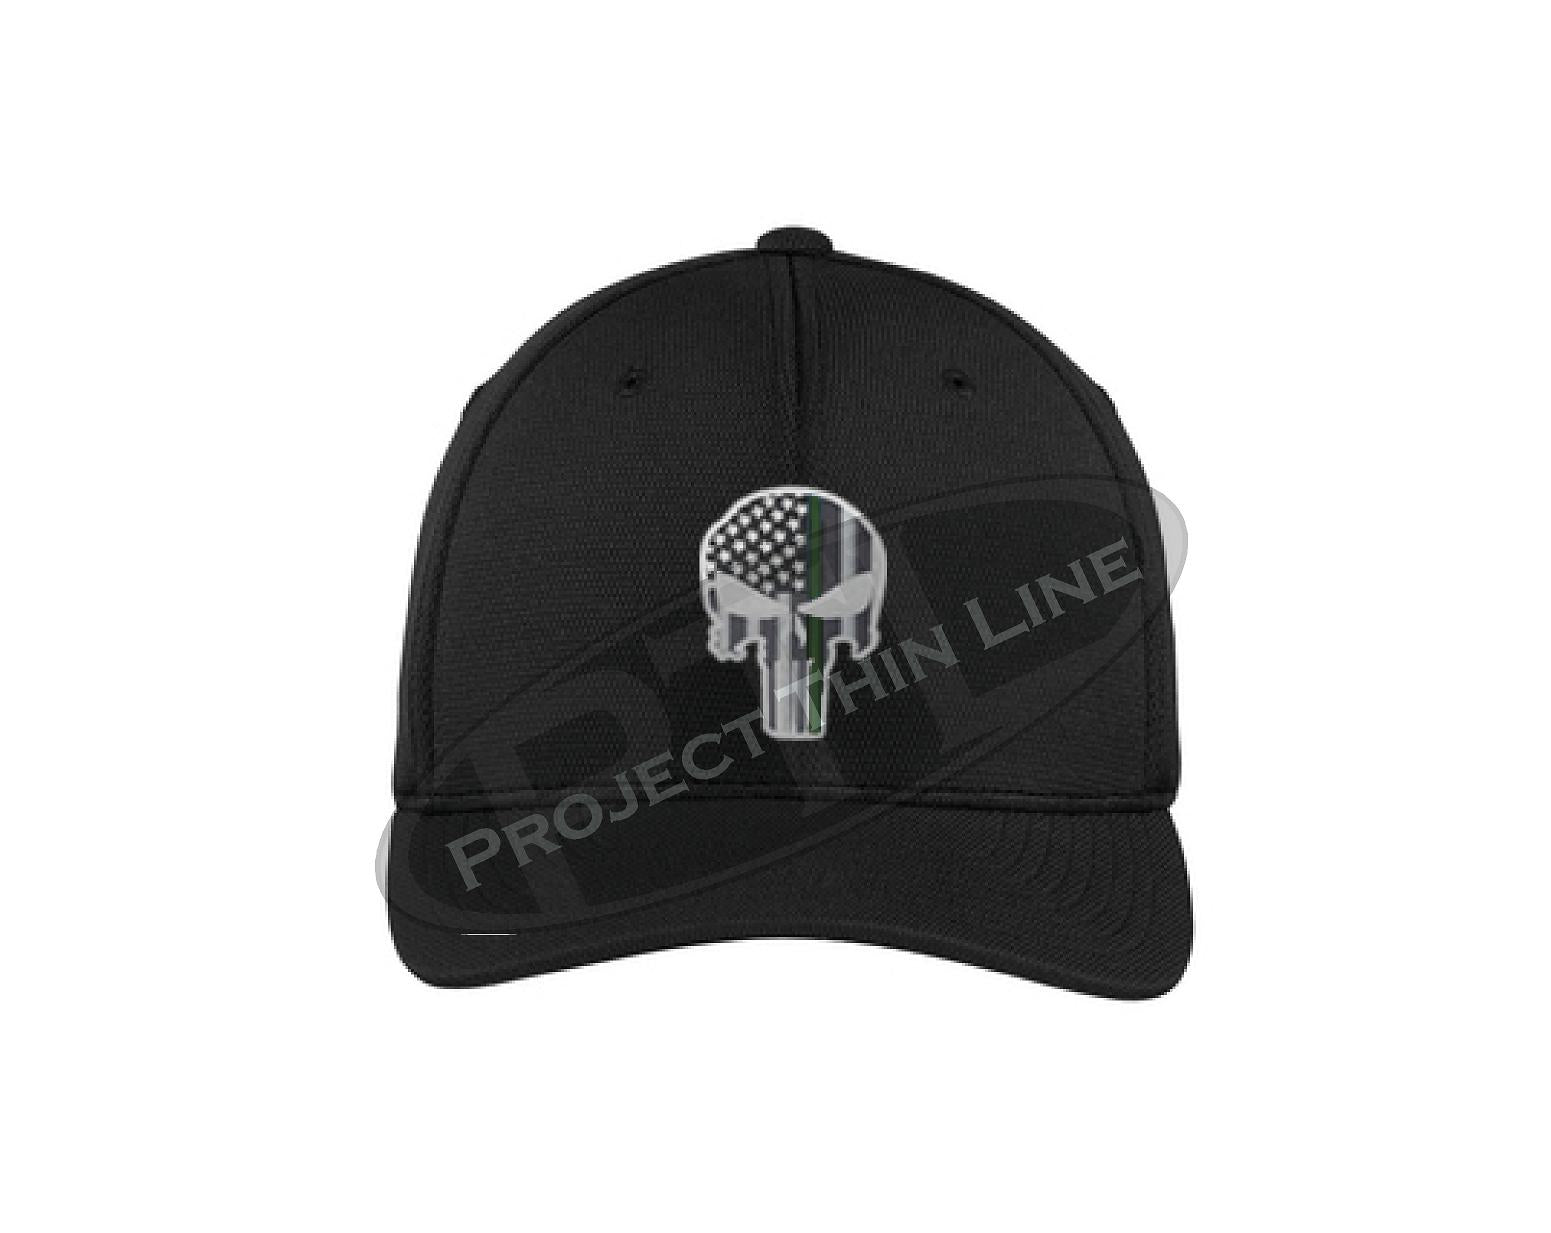 0a87281248898 BLACK Embroidered Thin Green Line Punisher Skull with American Flag Flex  Fit Hat